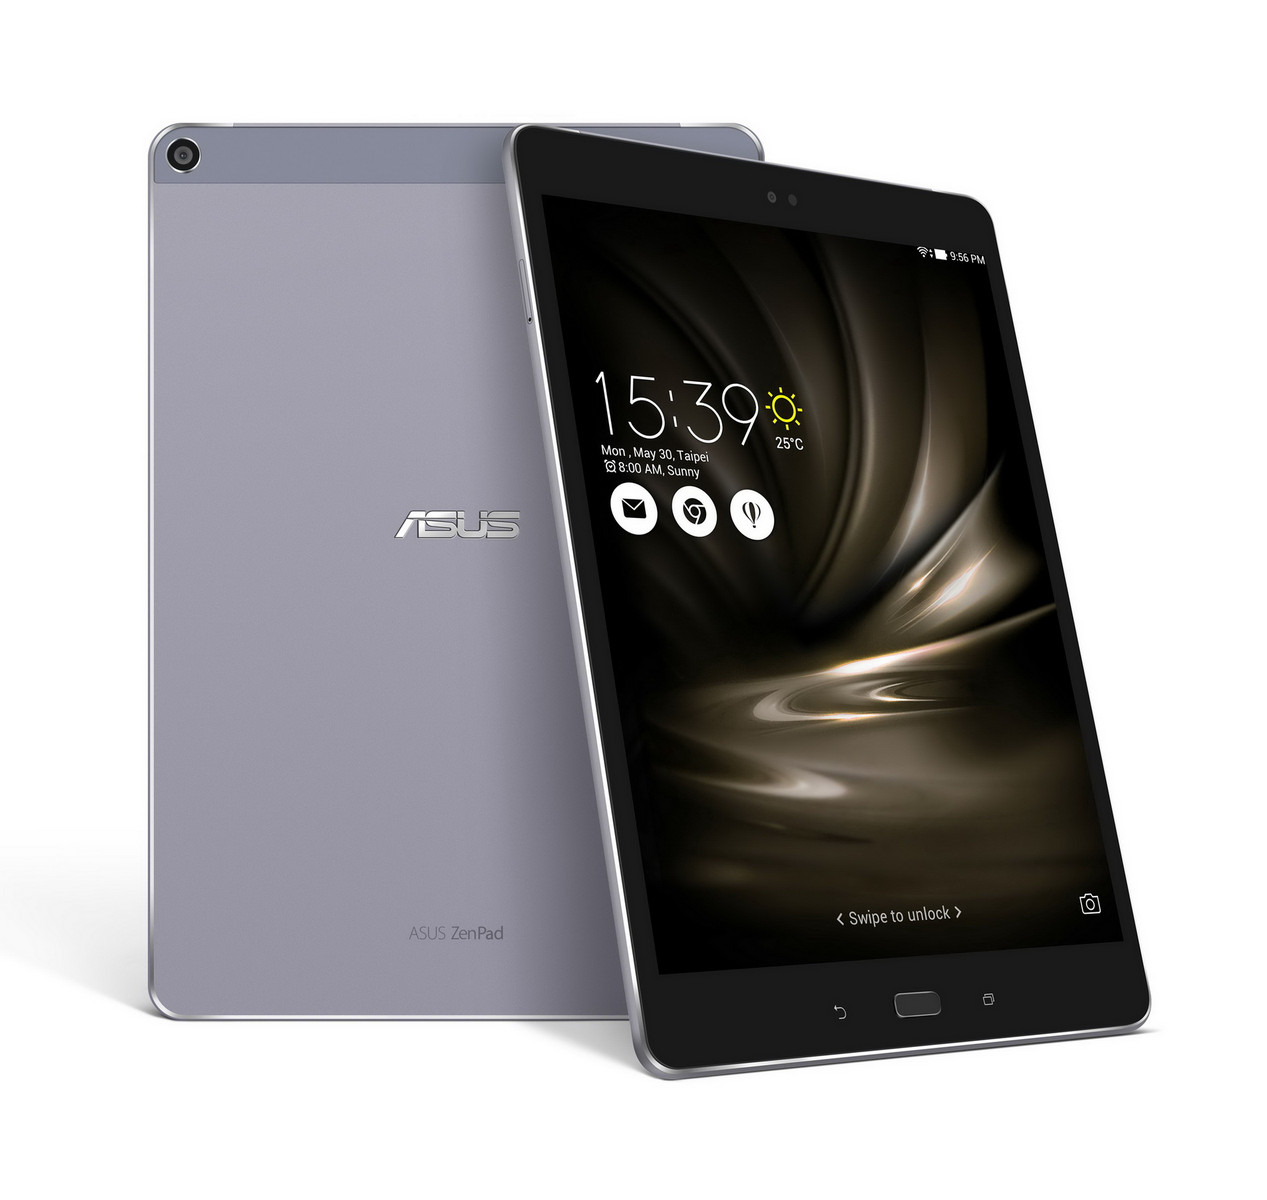 Image result for asus zenpad 3s